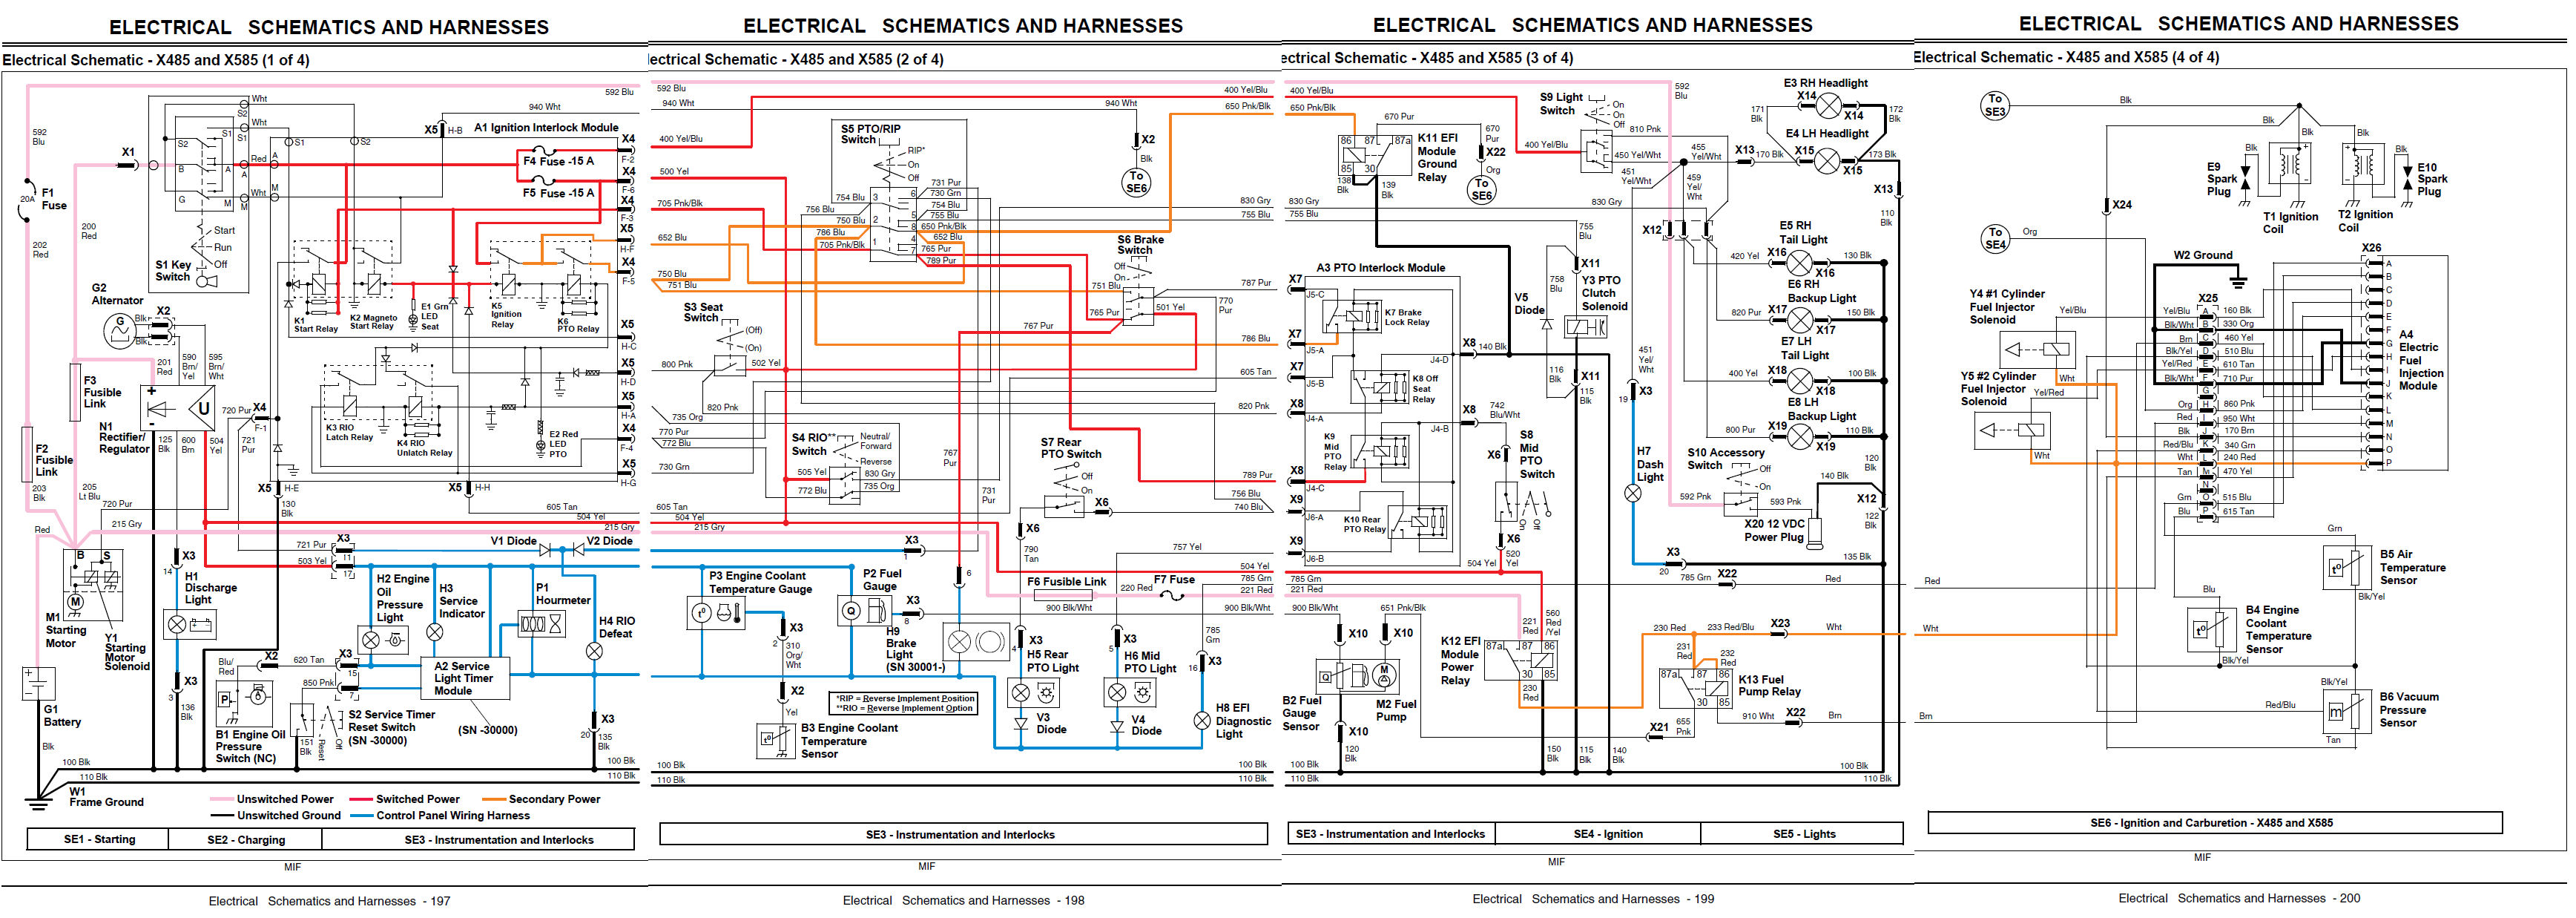 X700 electrical issues | My Tractor Forum on john deere gx1320, john deere electrical schematics, john deere chatterbox, john deere 160 hood, john deere construction, john deere ignition wiring 1010, john deere 111 solenoid, john deere 160 specifications, john deere 160 engine, john deere 4100 wiring, cub cadet lt1050 schematic, john deere 160 specs, john deere diagrams, john deere 160 parts list, john deere pto switch wiring, john deere mower f525 schematic, john deere 160 seat, john deere 160 manual, john deere 112 restoration parts, john deere 318 ignition wiring,